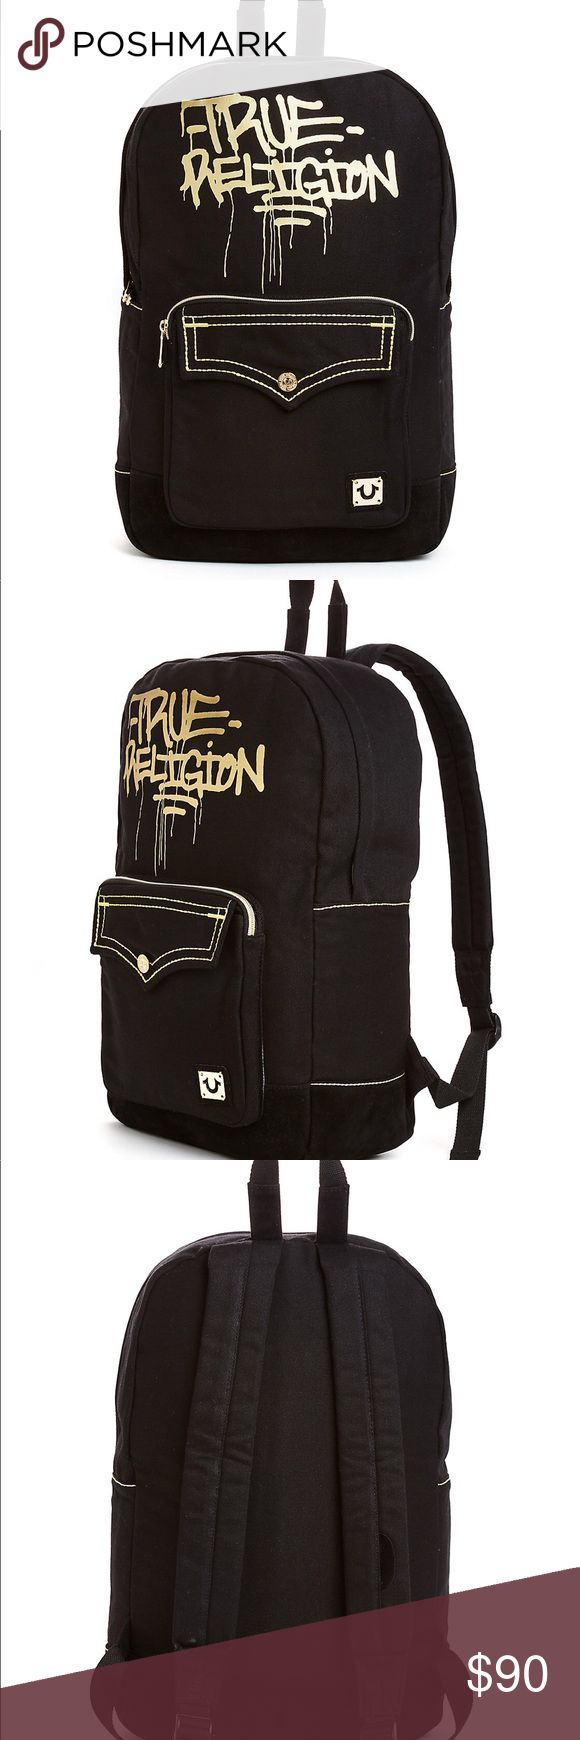 True Religion backpack Brand New With Tags ! Authentic  originally 149.00 Dimensions: 32.5 x 40 x 12 Very Nice backpack ! True Religion Bags Backpacks